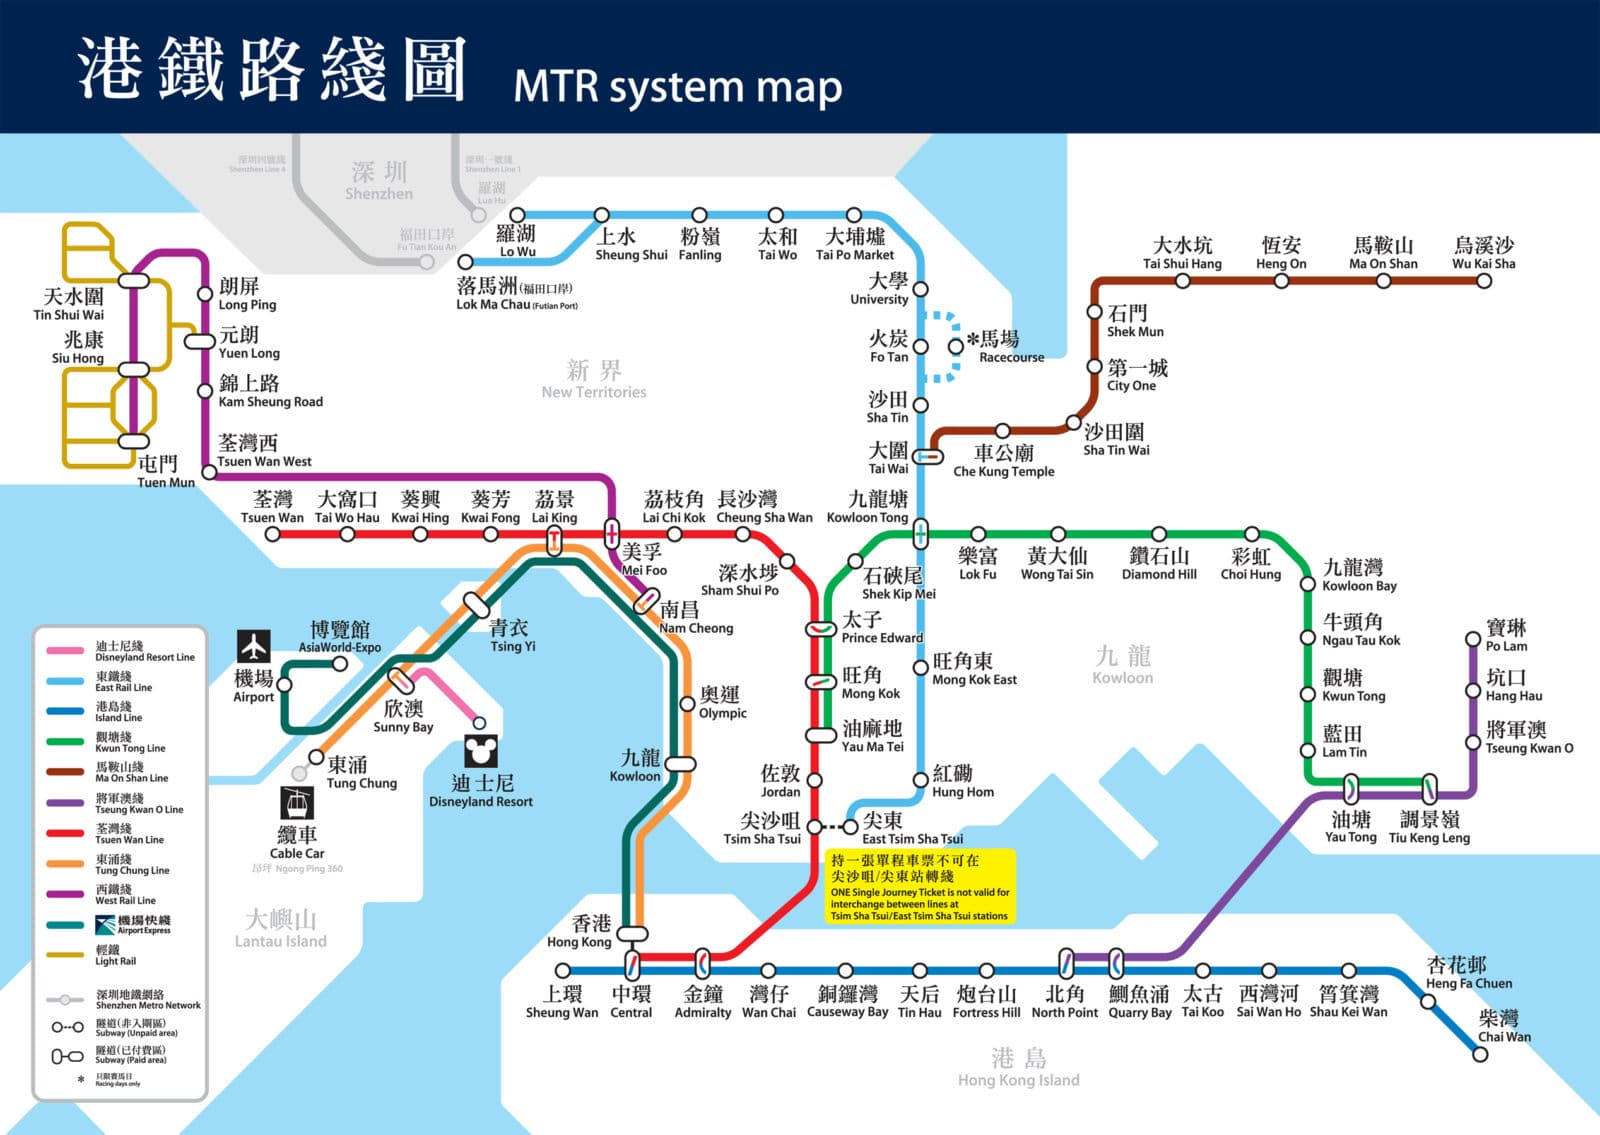 http://china-mike.com/wp-content/uploads/2010/08/hong-kong-MTR-system-map.jpg